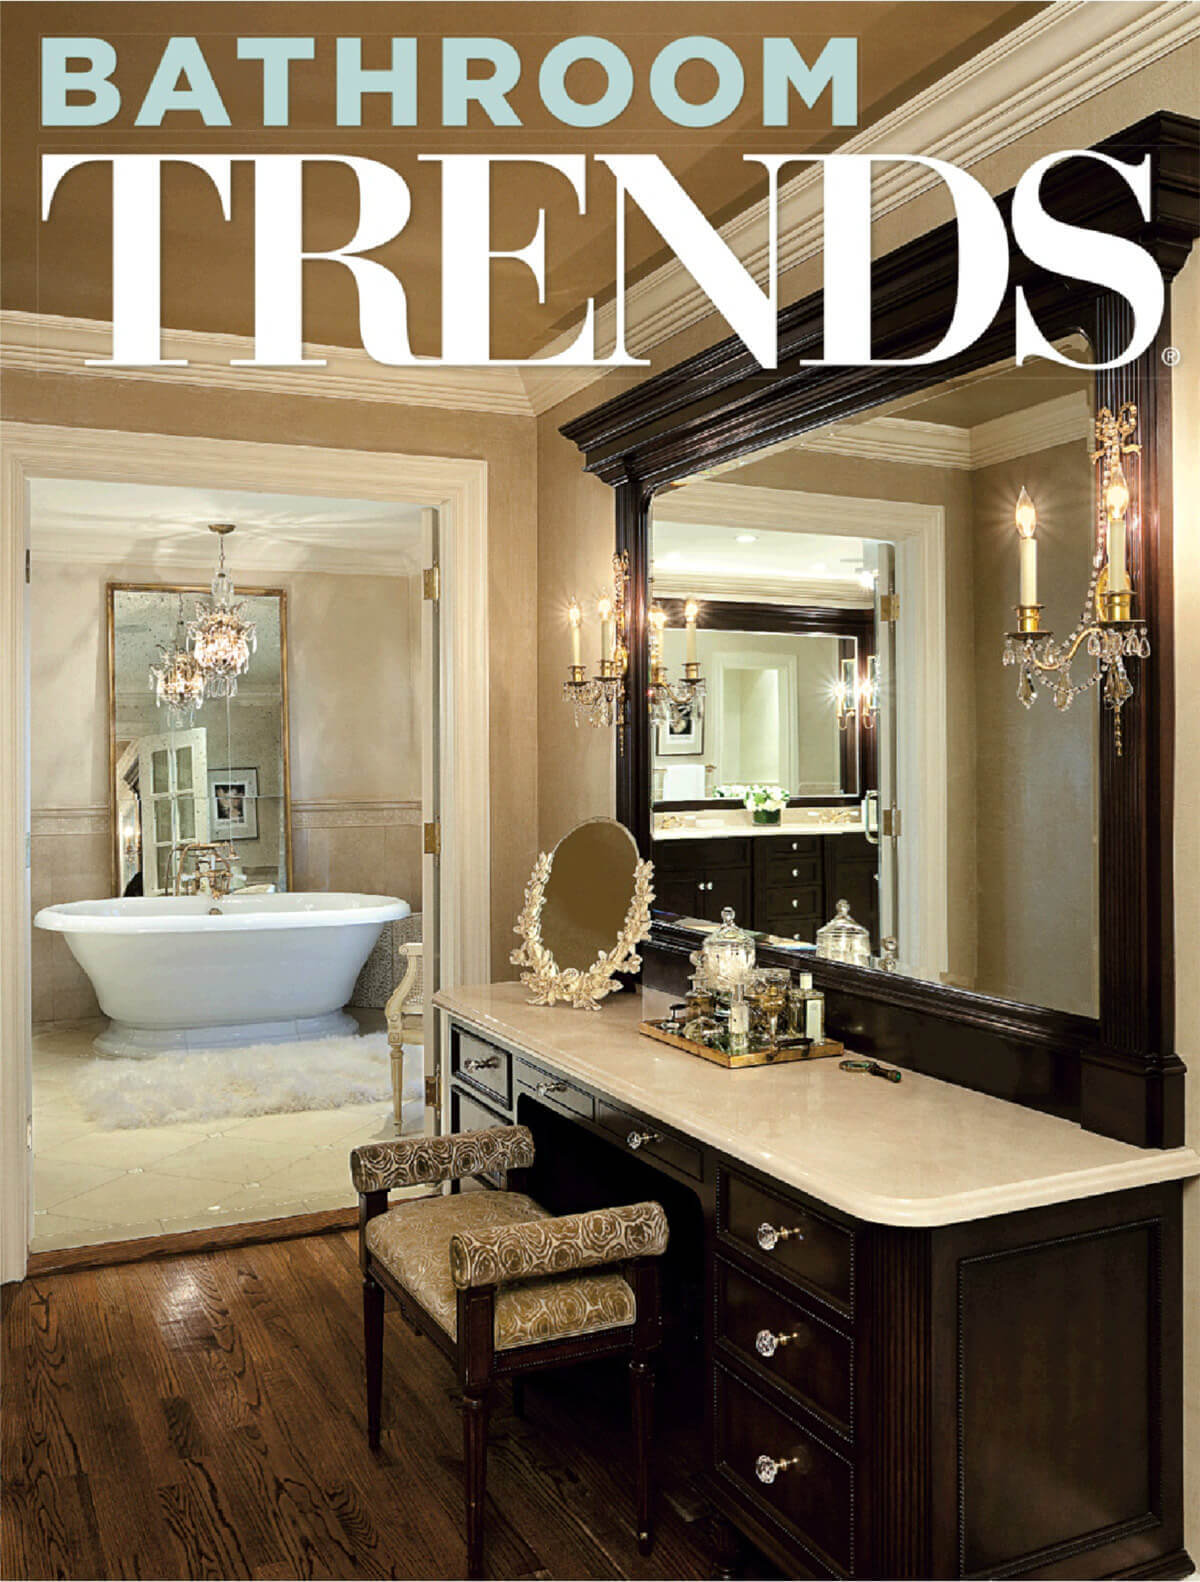 Bathroom trends magazine home design for Bathroom remodel trends